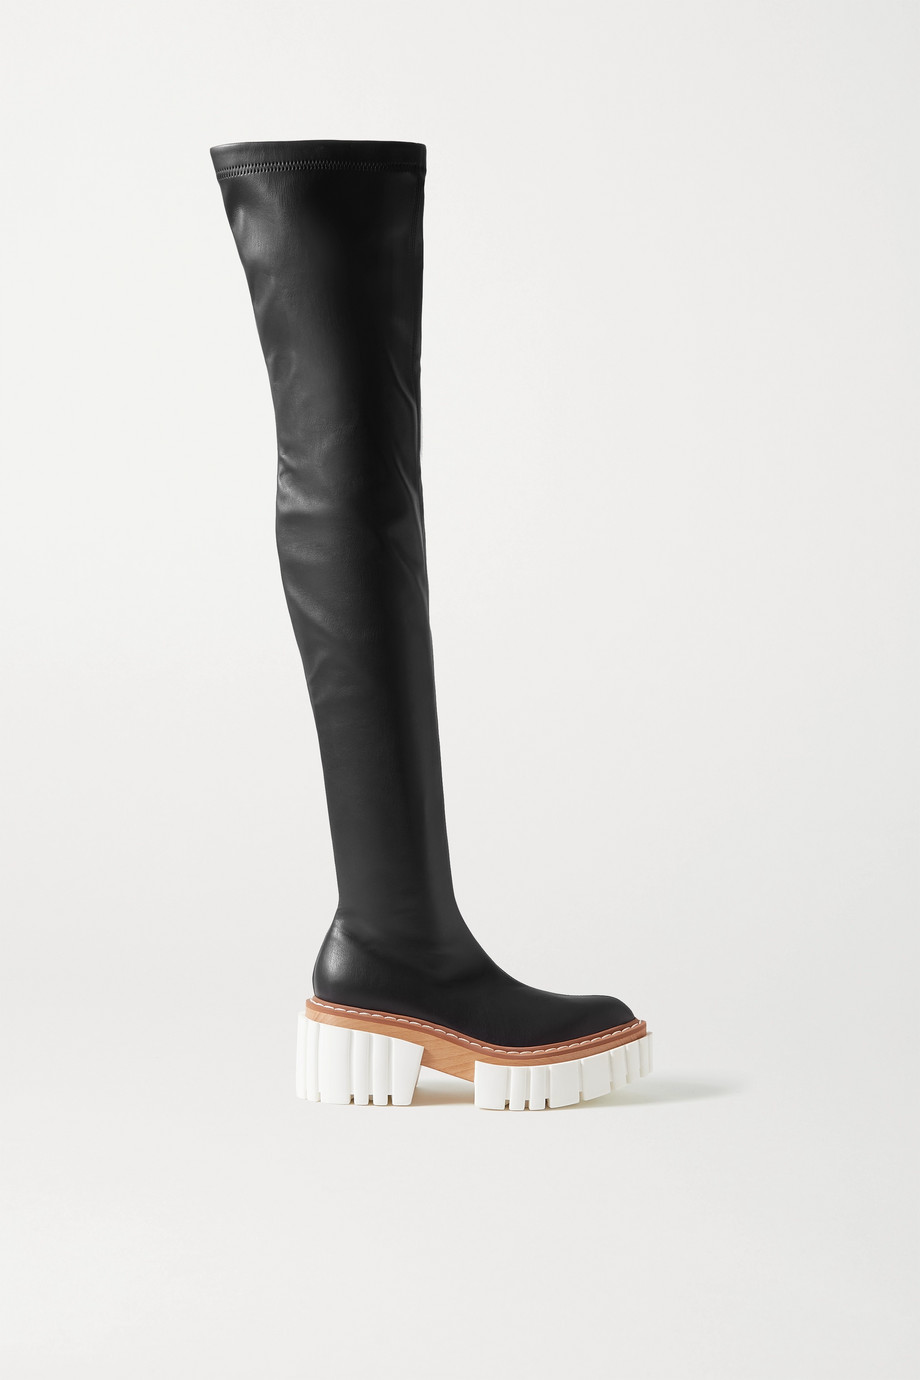 Stella McCartney Emilie vegetarian leather platform over-the-knee boots